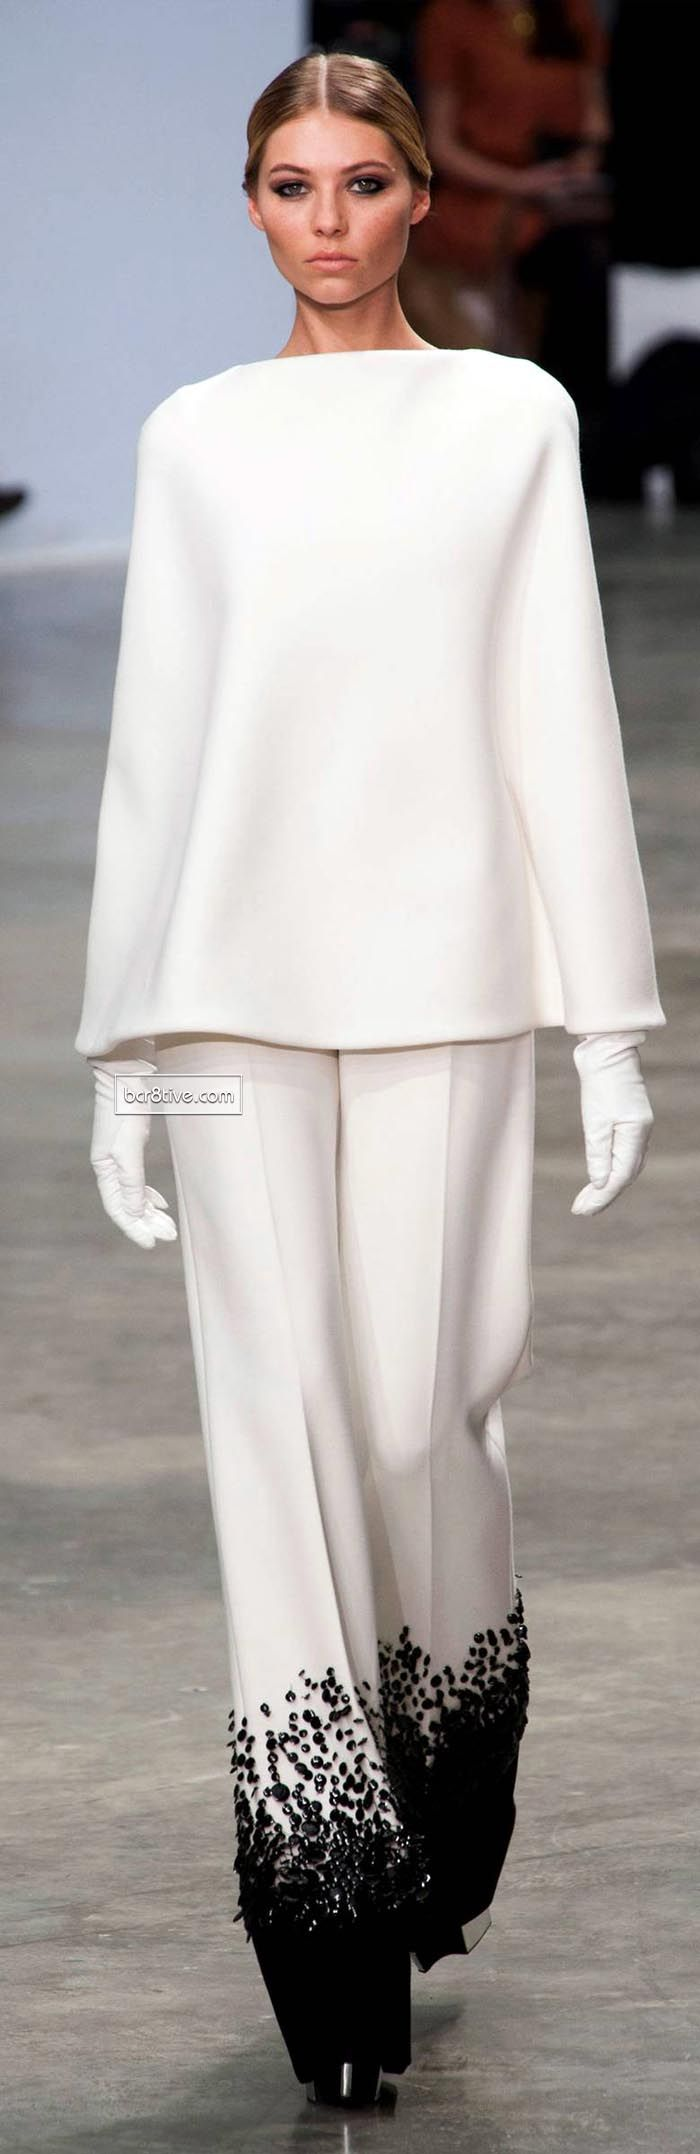 Stephane Rolland Spring Summer 2013-14 Haute Couture